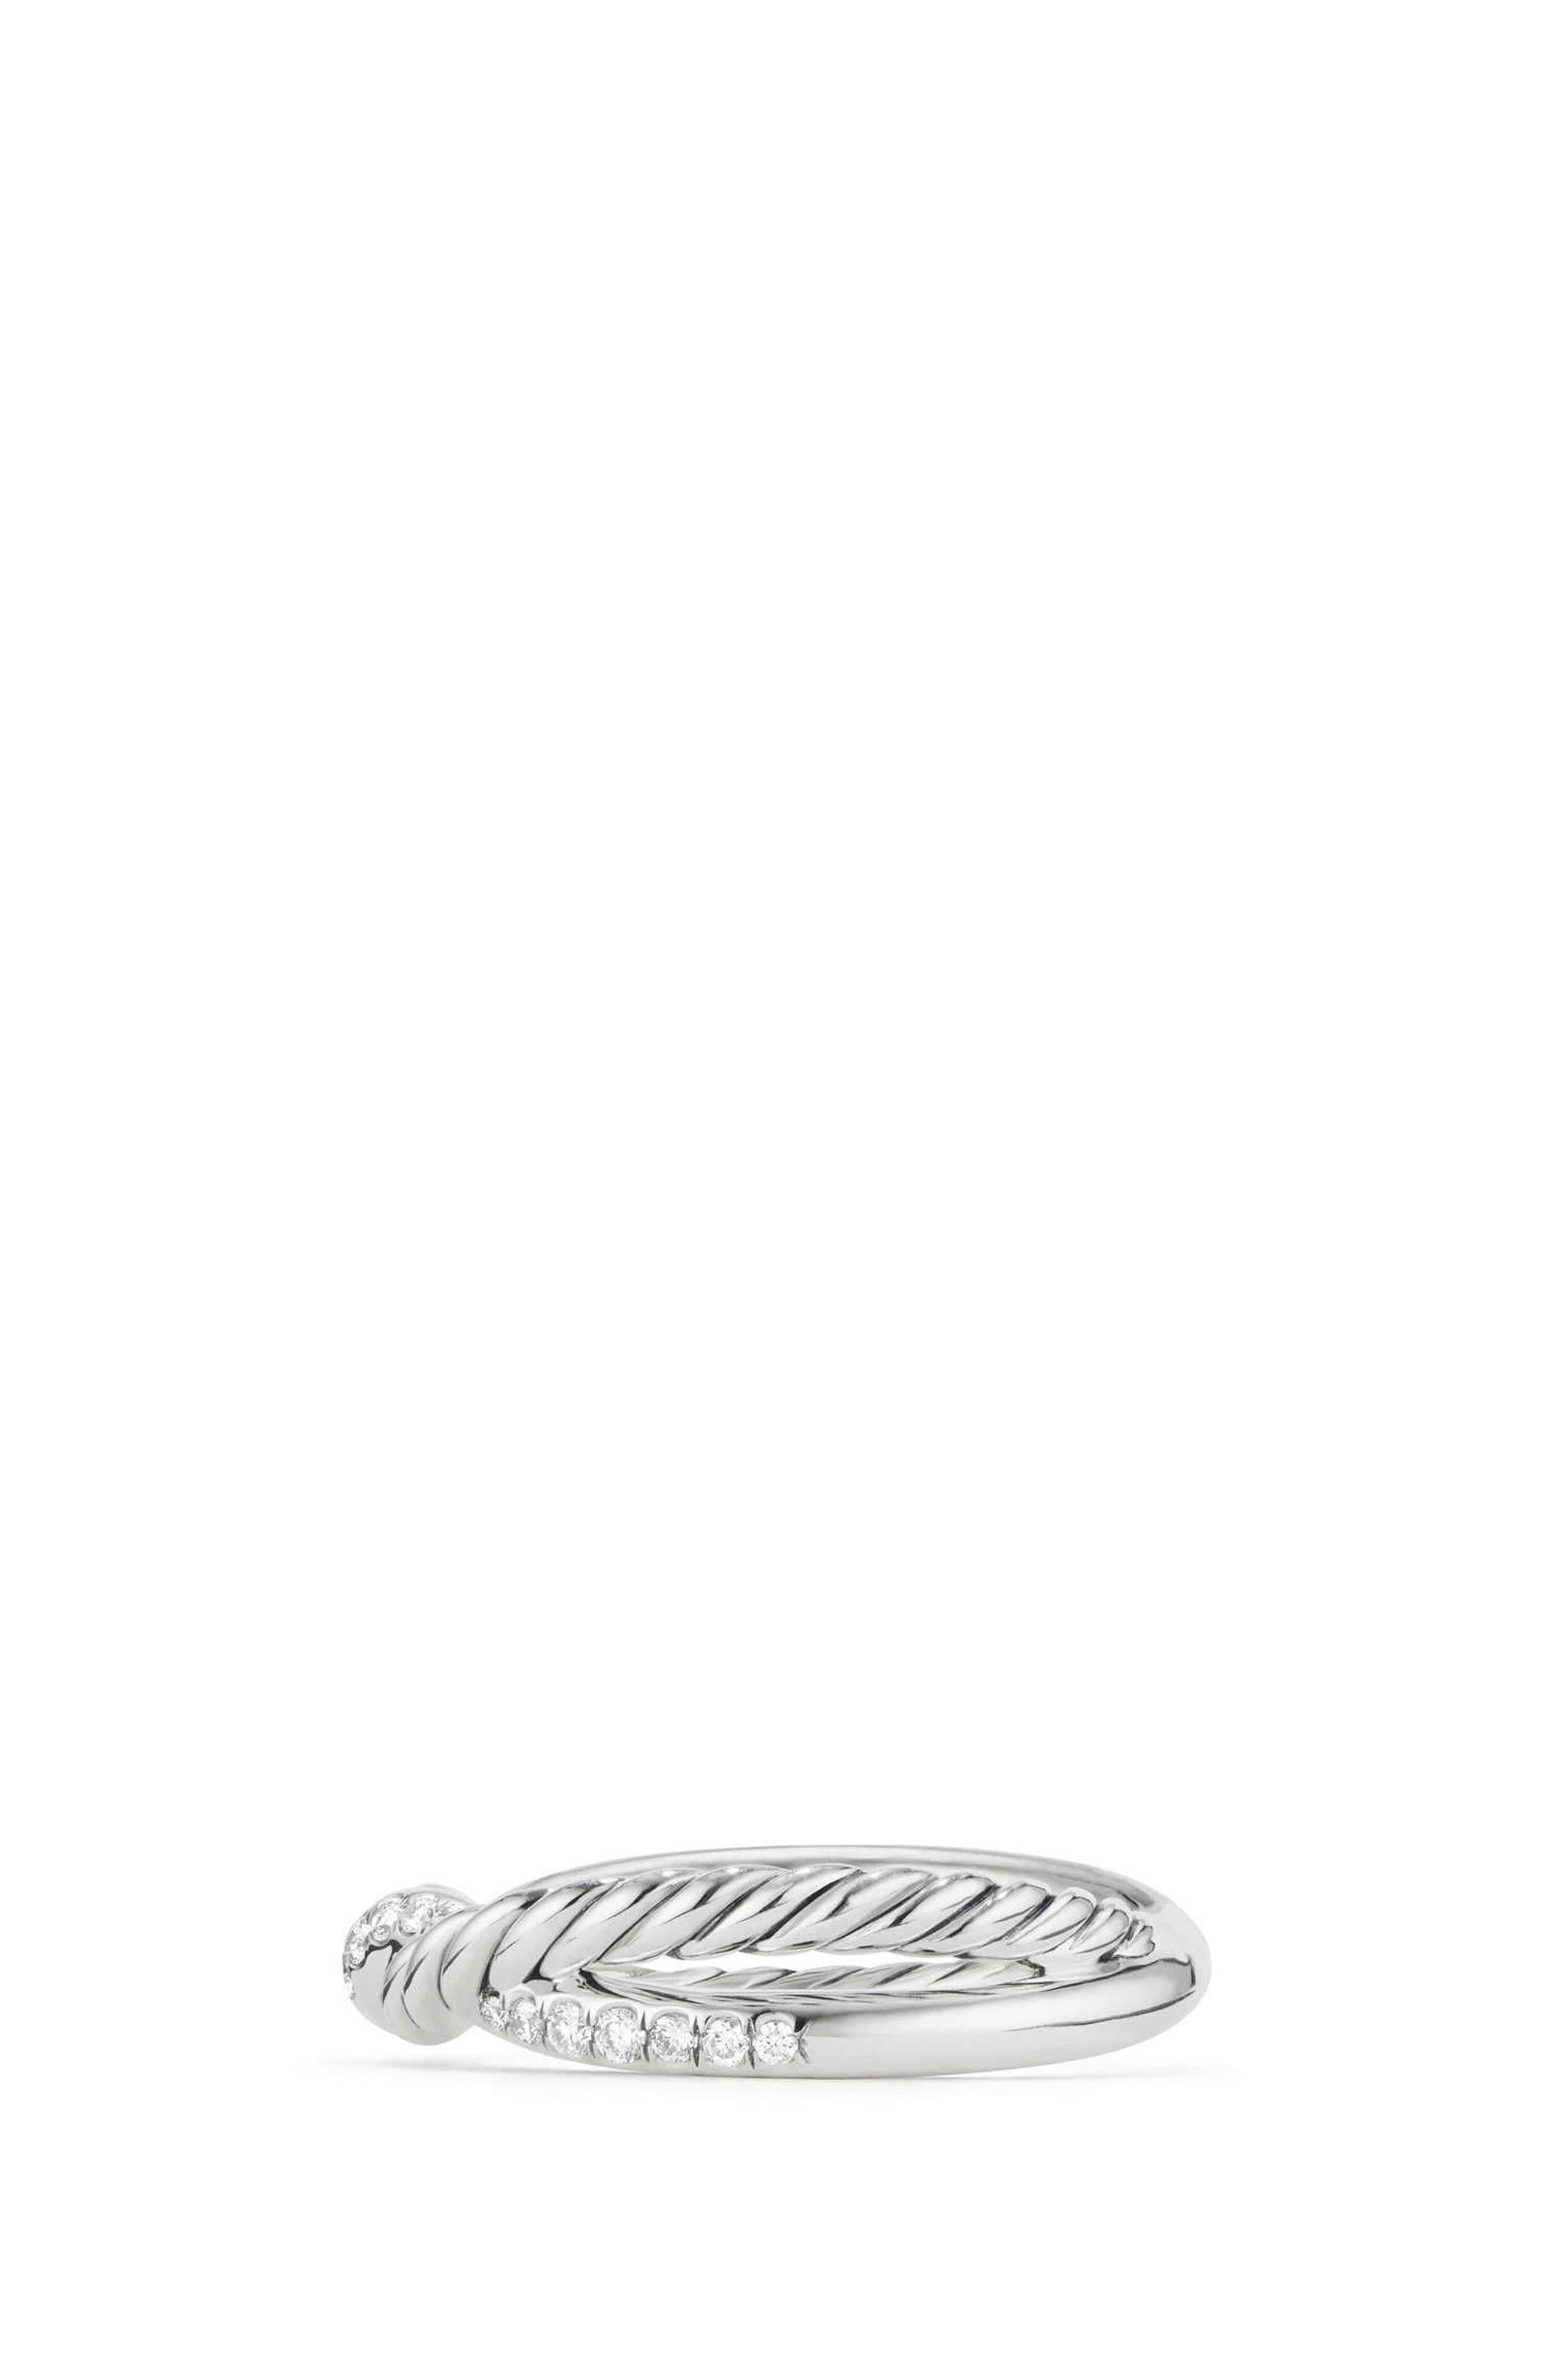 Continuance Twist Ring with Diamonds,                             Alternate thumbnail 3, color,                             SILVER/ DIAMOND